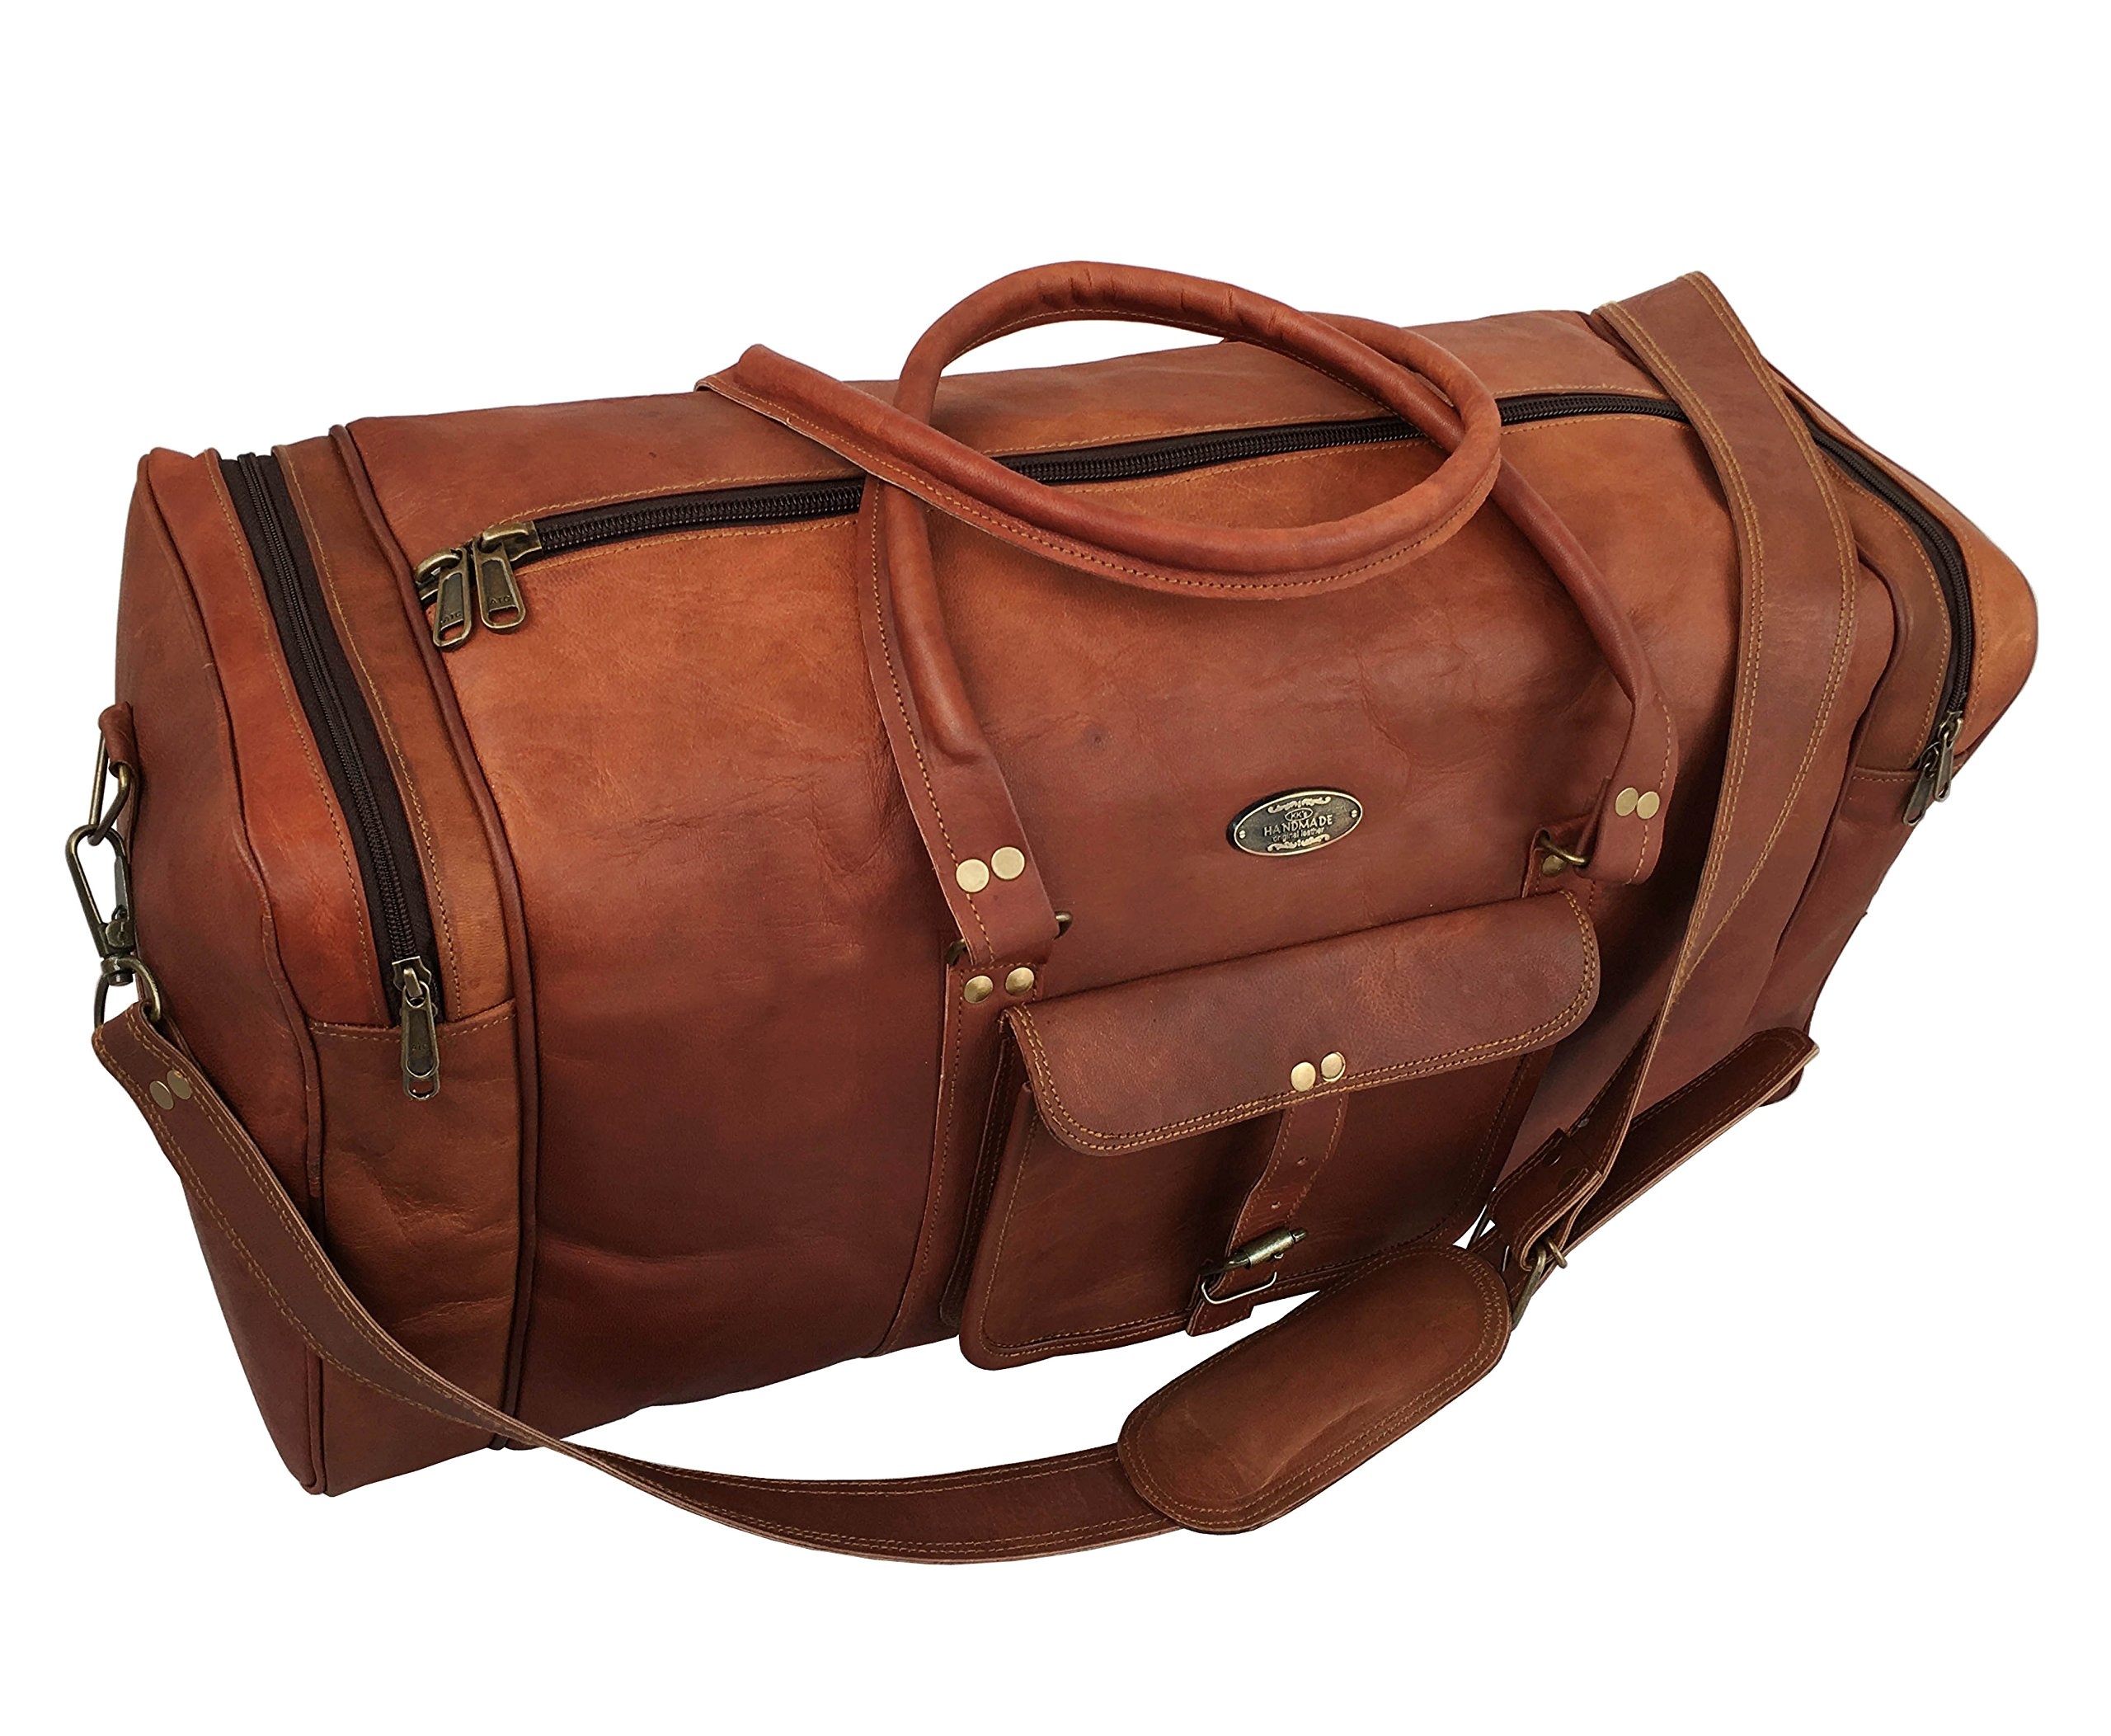 KK's 25'' Inch Leather Duffel Leather Luggage Holdall Overnight Gym Bags for men